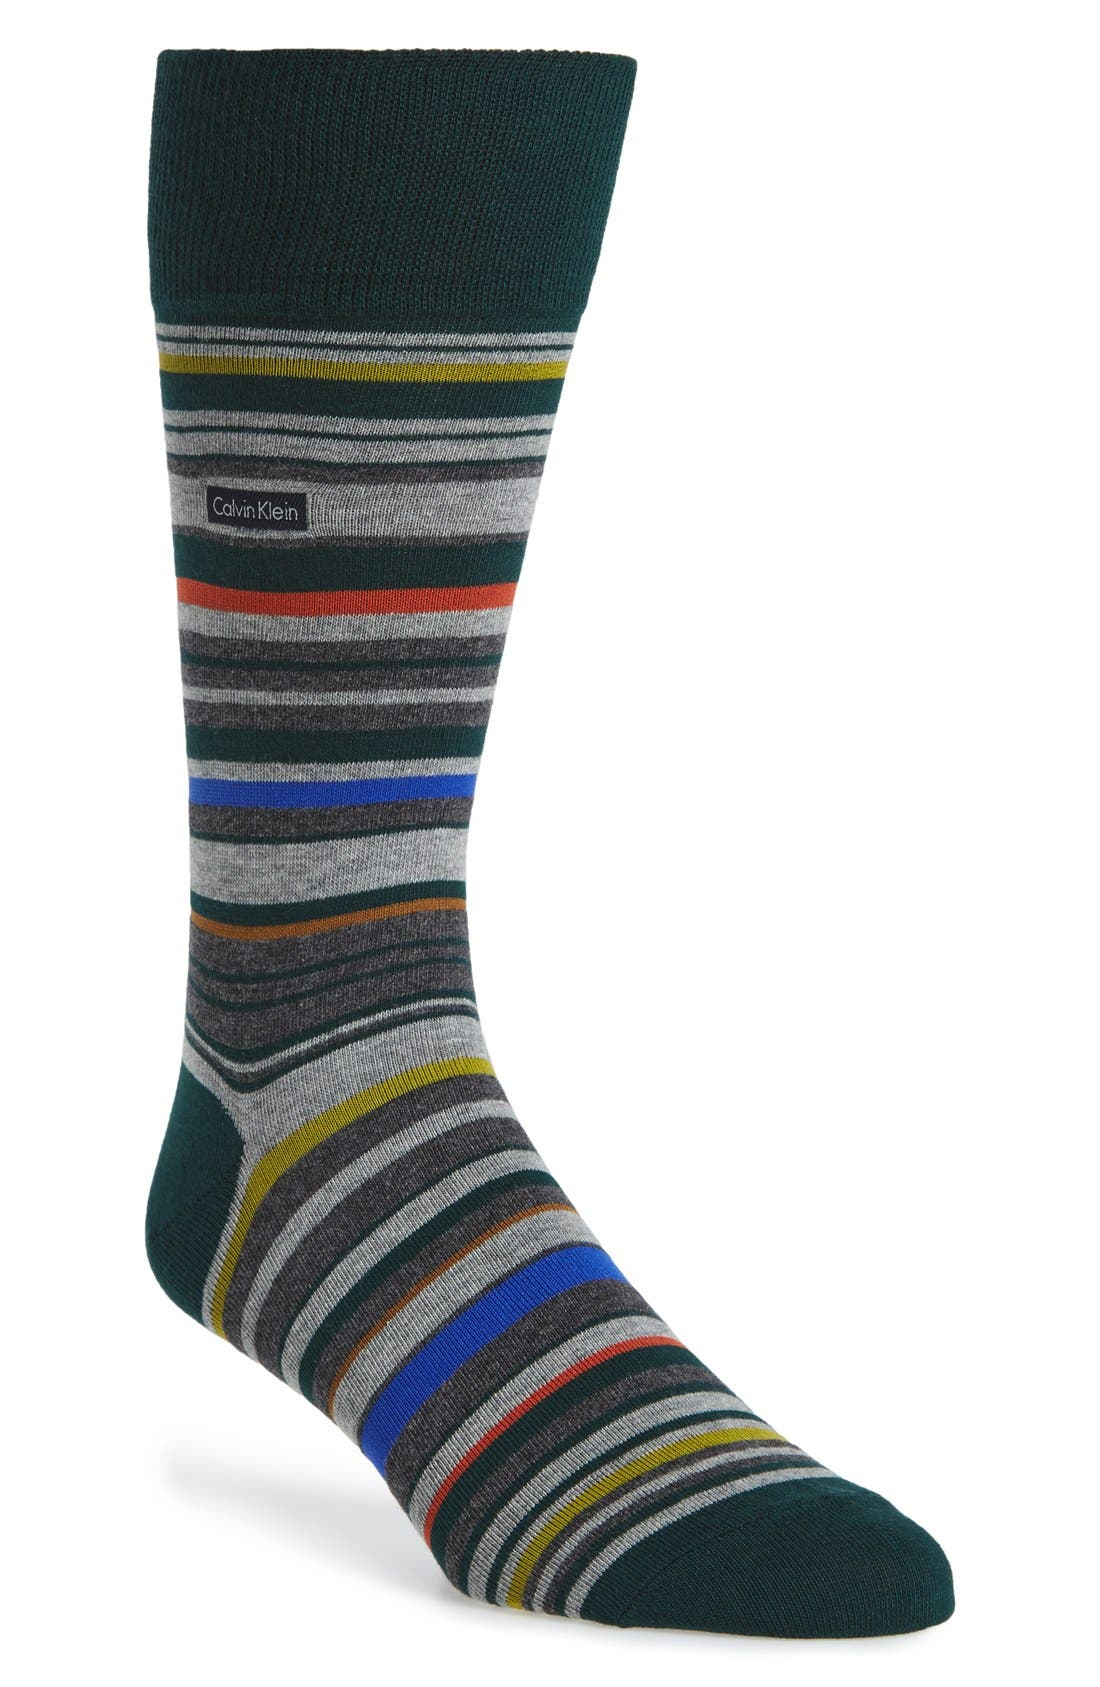 Multistripe Emblem Socks,                             Main thumbnail 1, color,                             Spruce